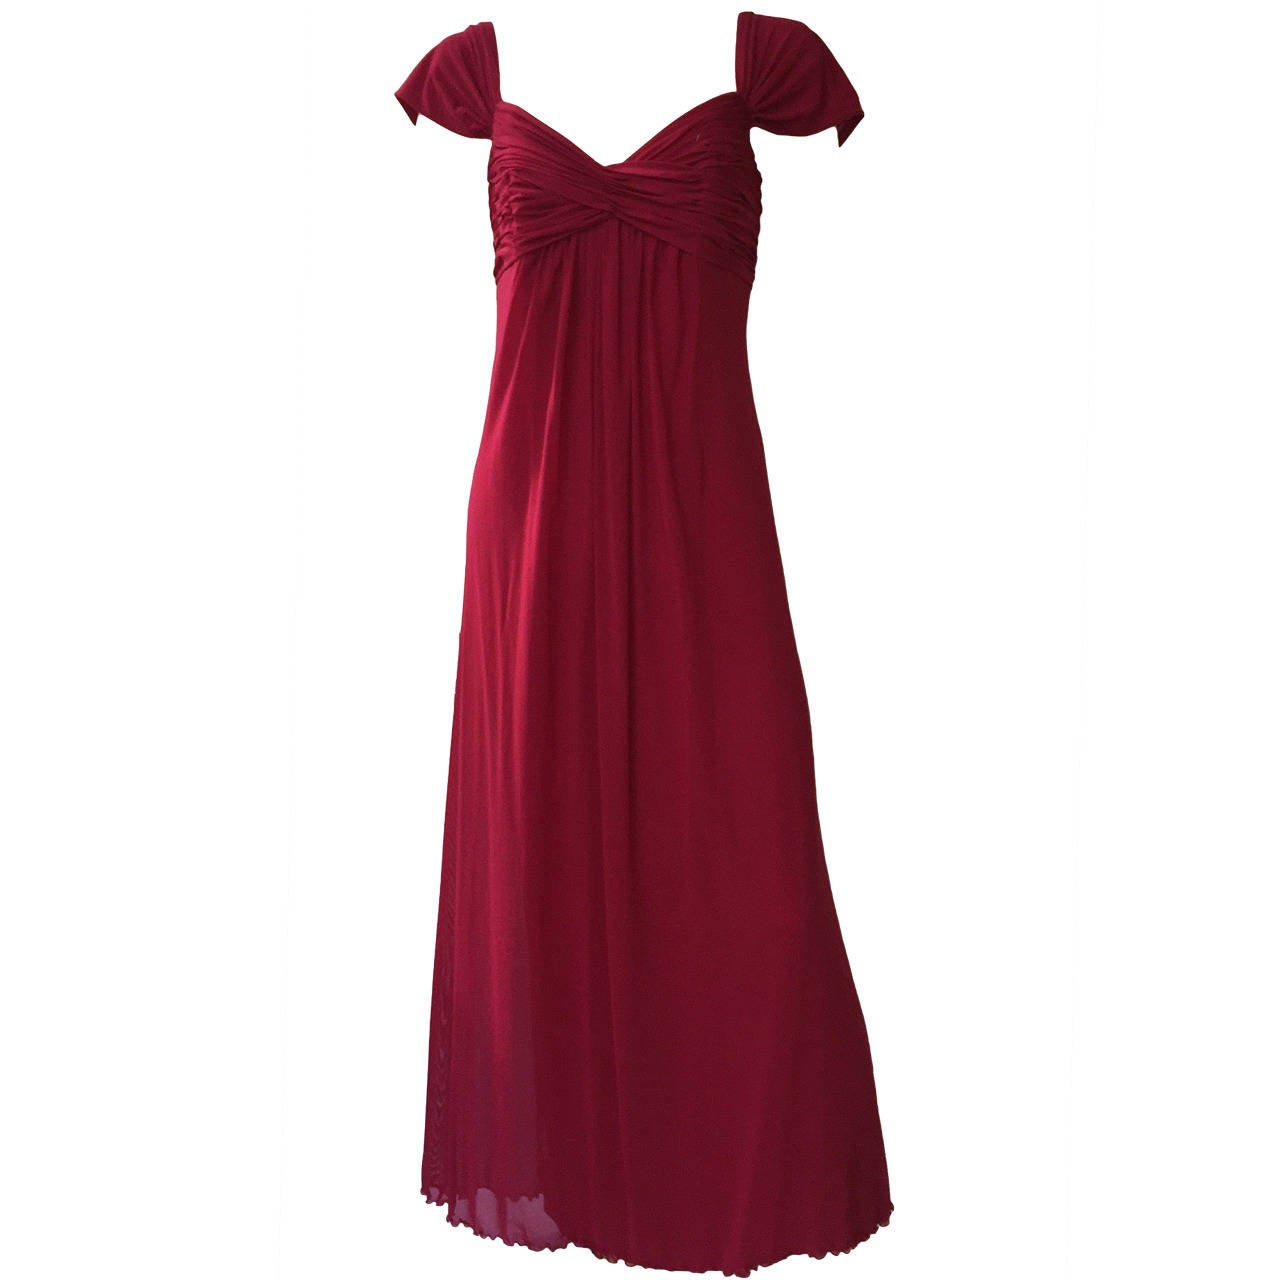 Vicky Tiel Couture Paris Silk Burgundy Evening Gown Size 6/8. For Sale